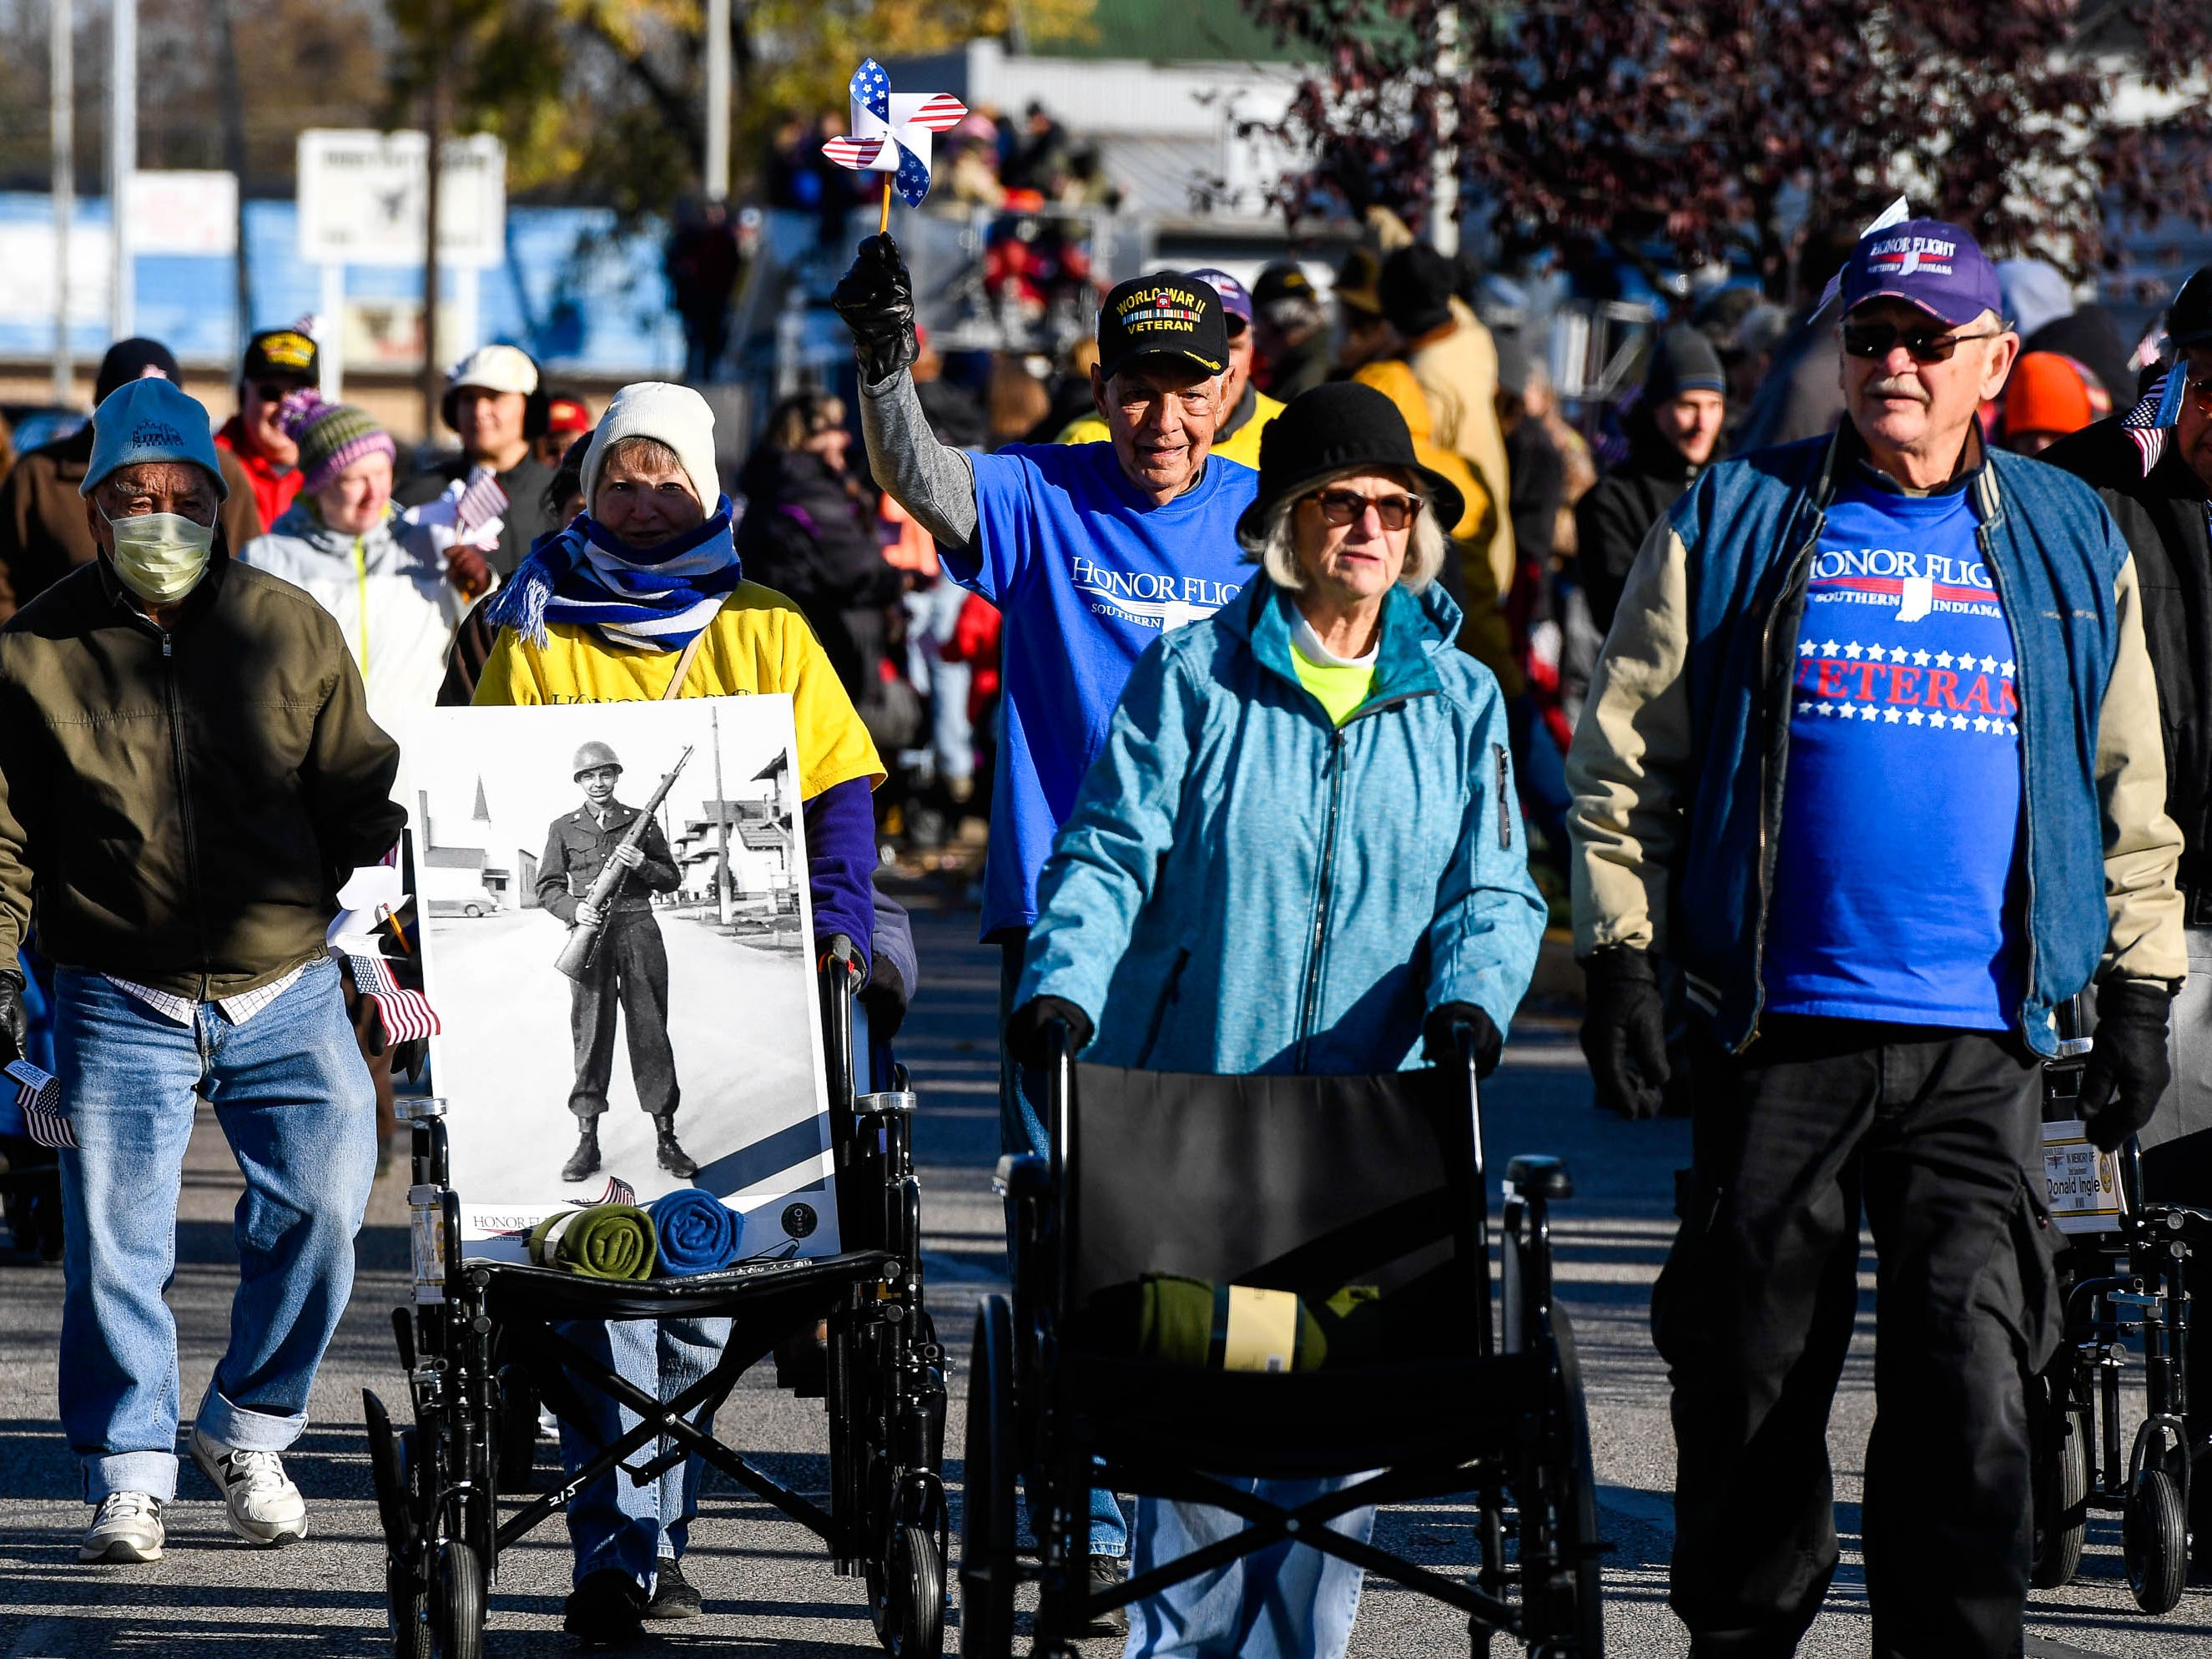 Honor flight veterans at the annual Four Freedoms Veterans Parade on Evansville's West Franklin Street Saturday, November 10, 2018.